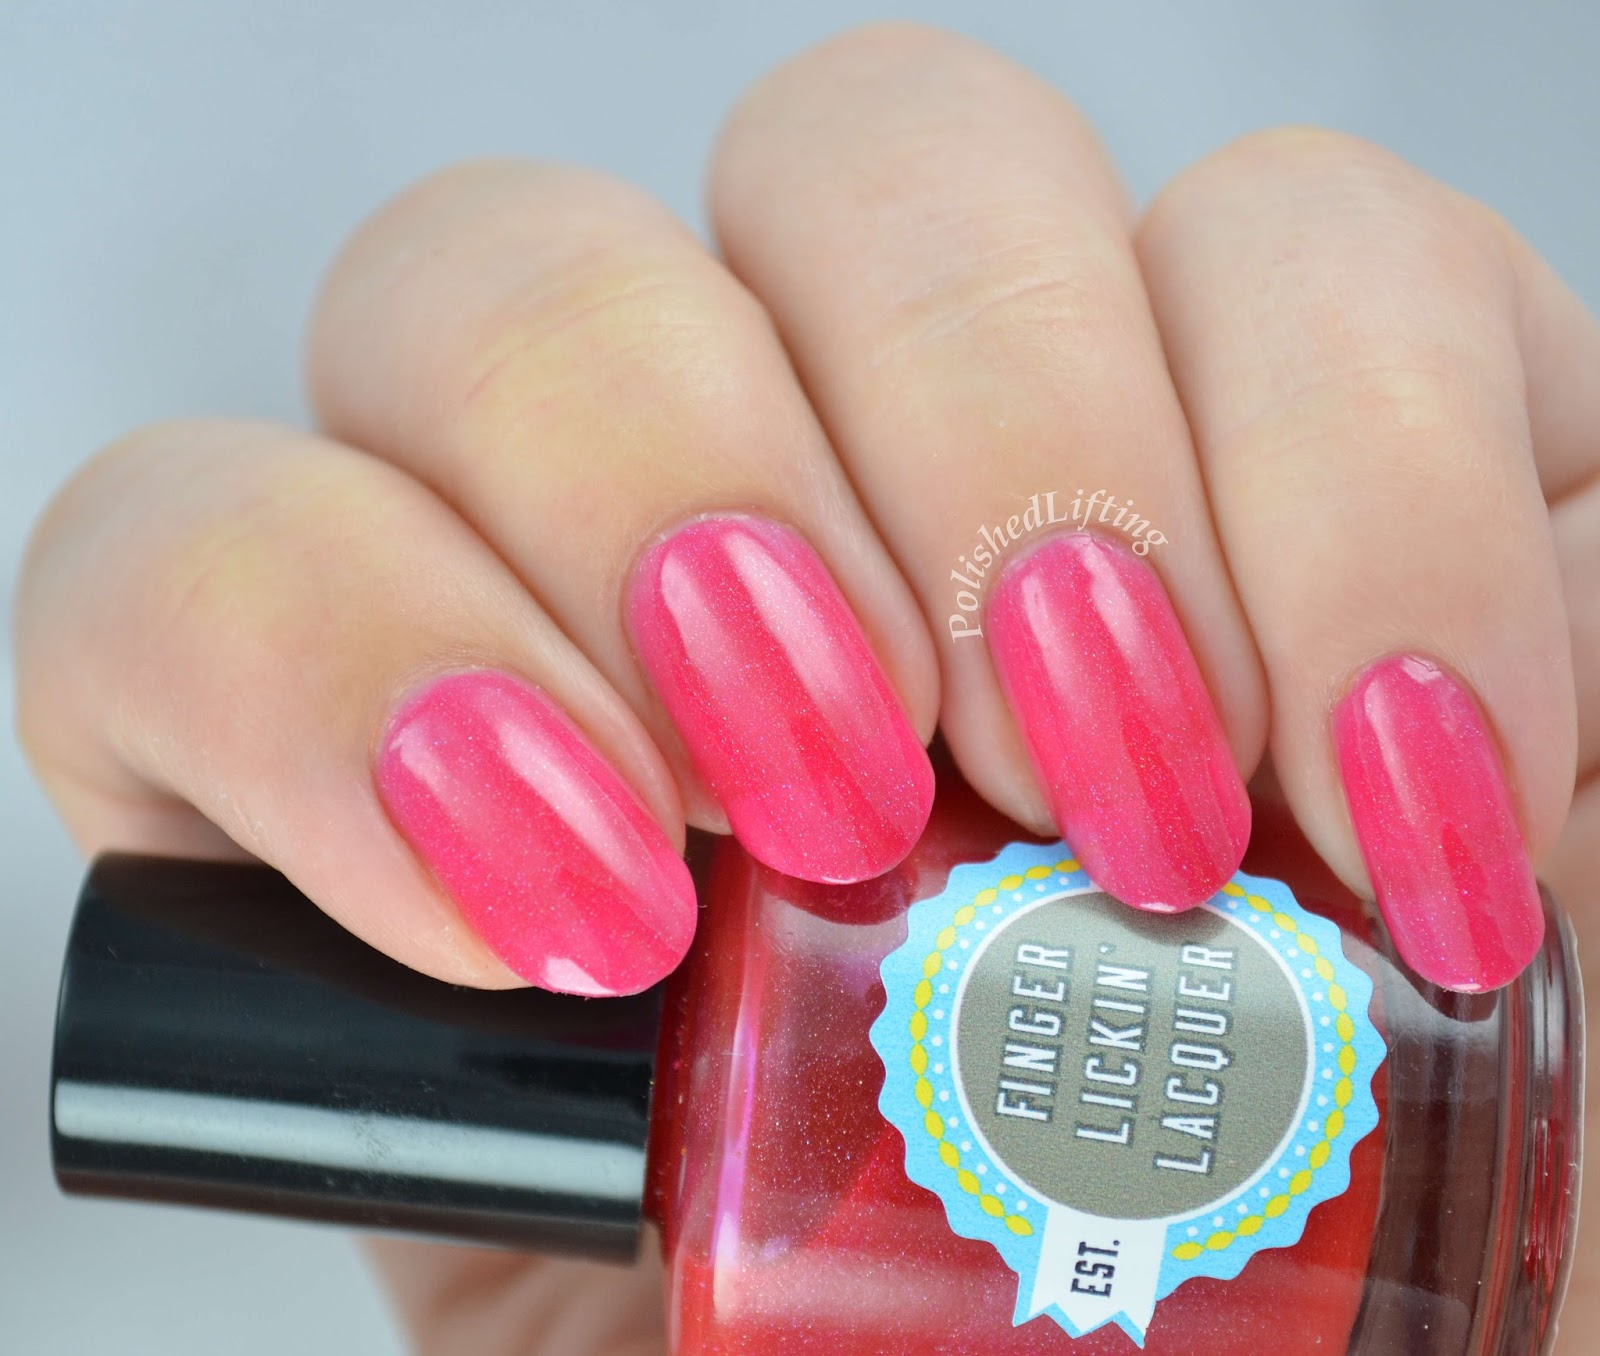 Finger Lickin' Lacquer Apple Tart